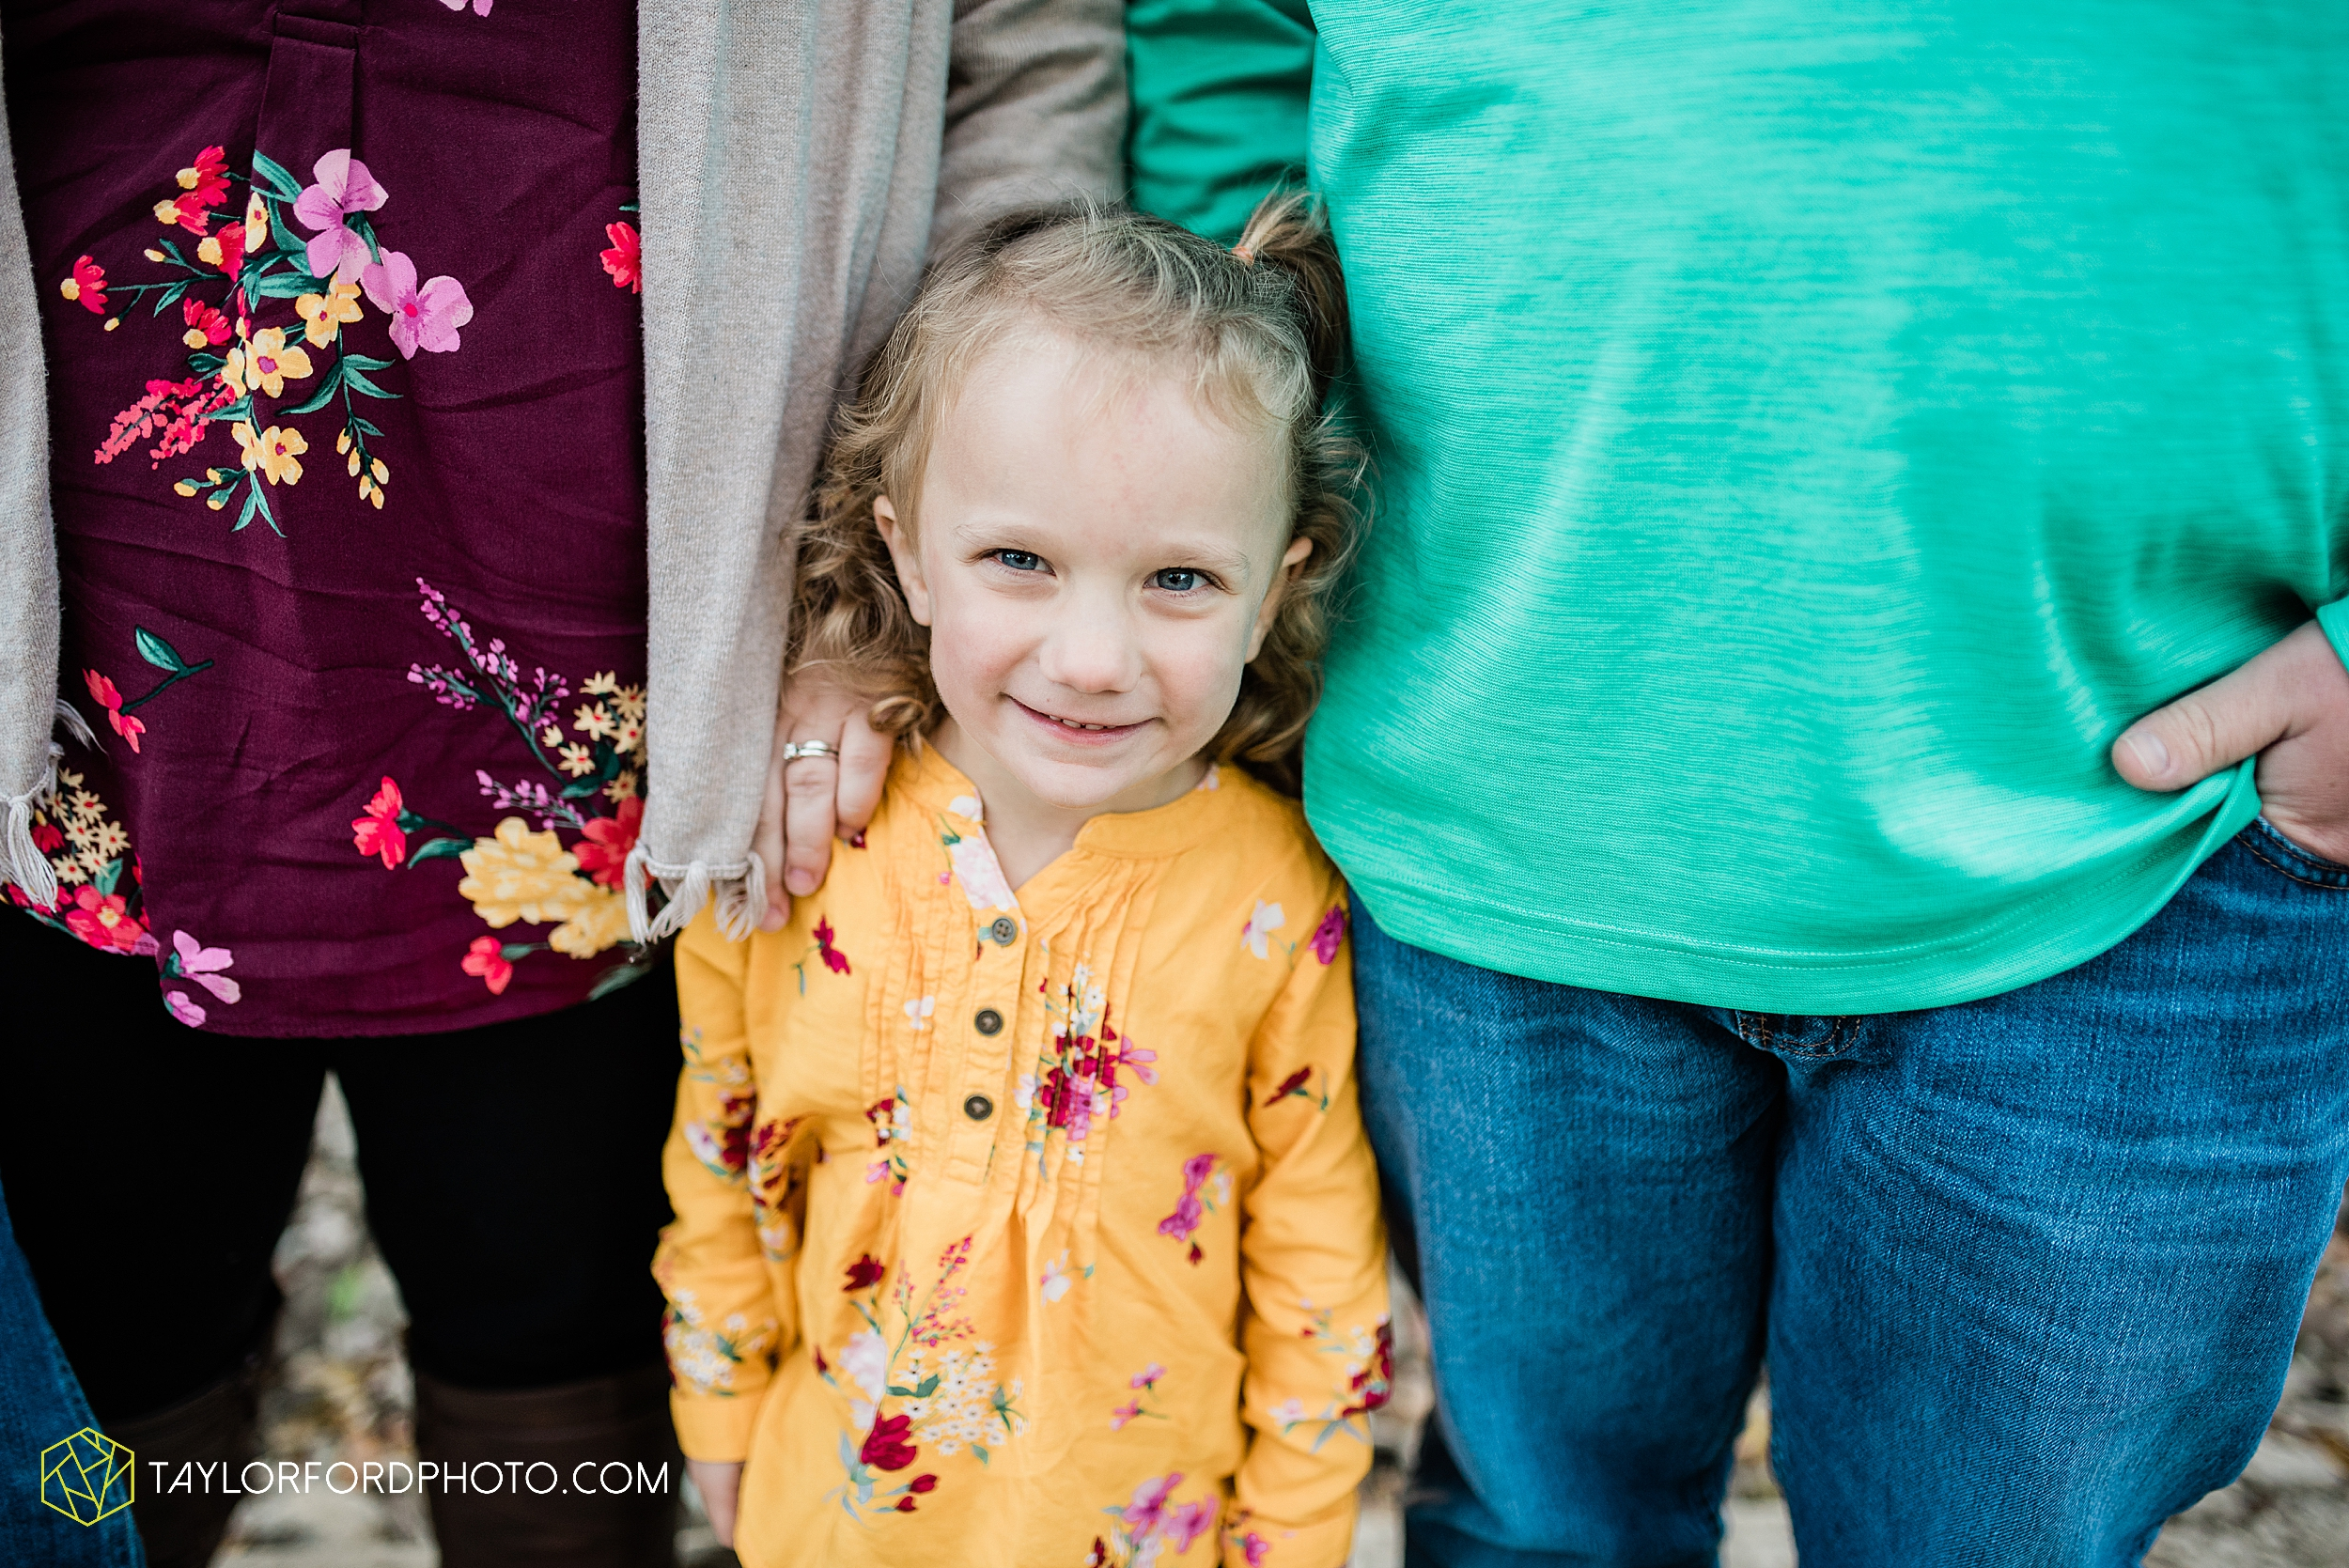 hogan-northeast-fort-wayne-indiana-family-fall-photographer-taylor-ford-photography_1381.jpg